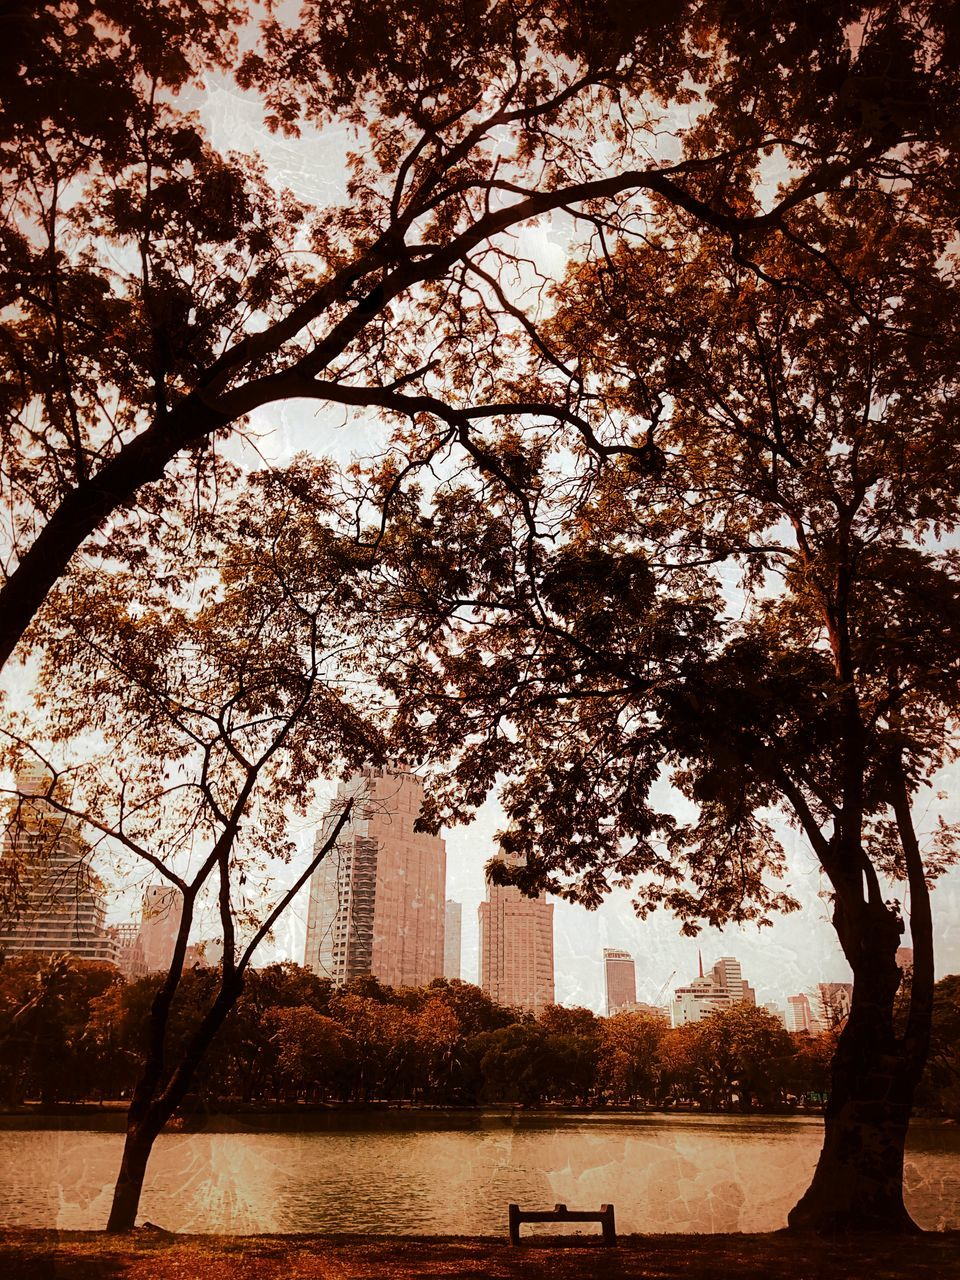 tree, built structure, architecture, building exterior, water, growth, branch, outdoors, no people, sky, day, river, nature, sunlight, city, beauty in nature, skyscraper